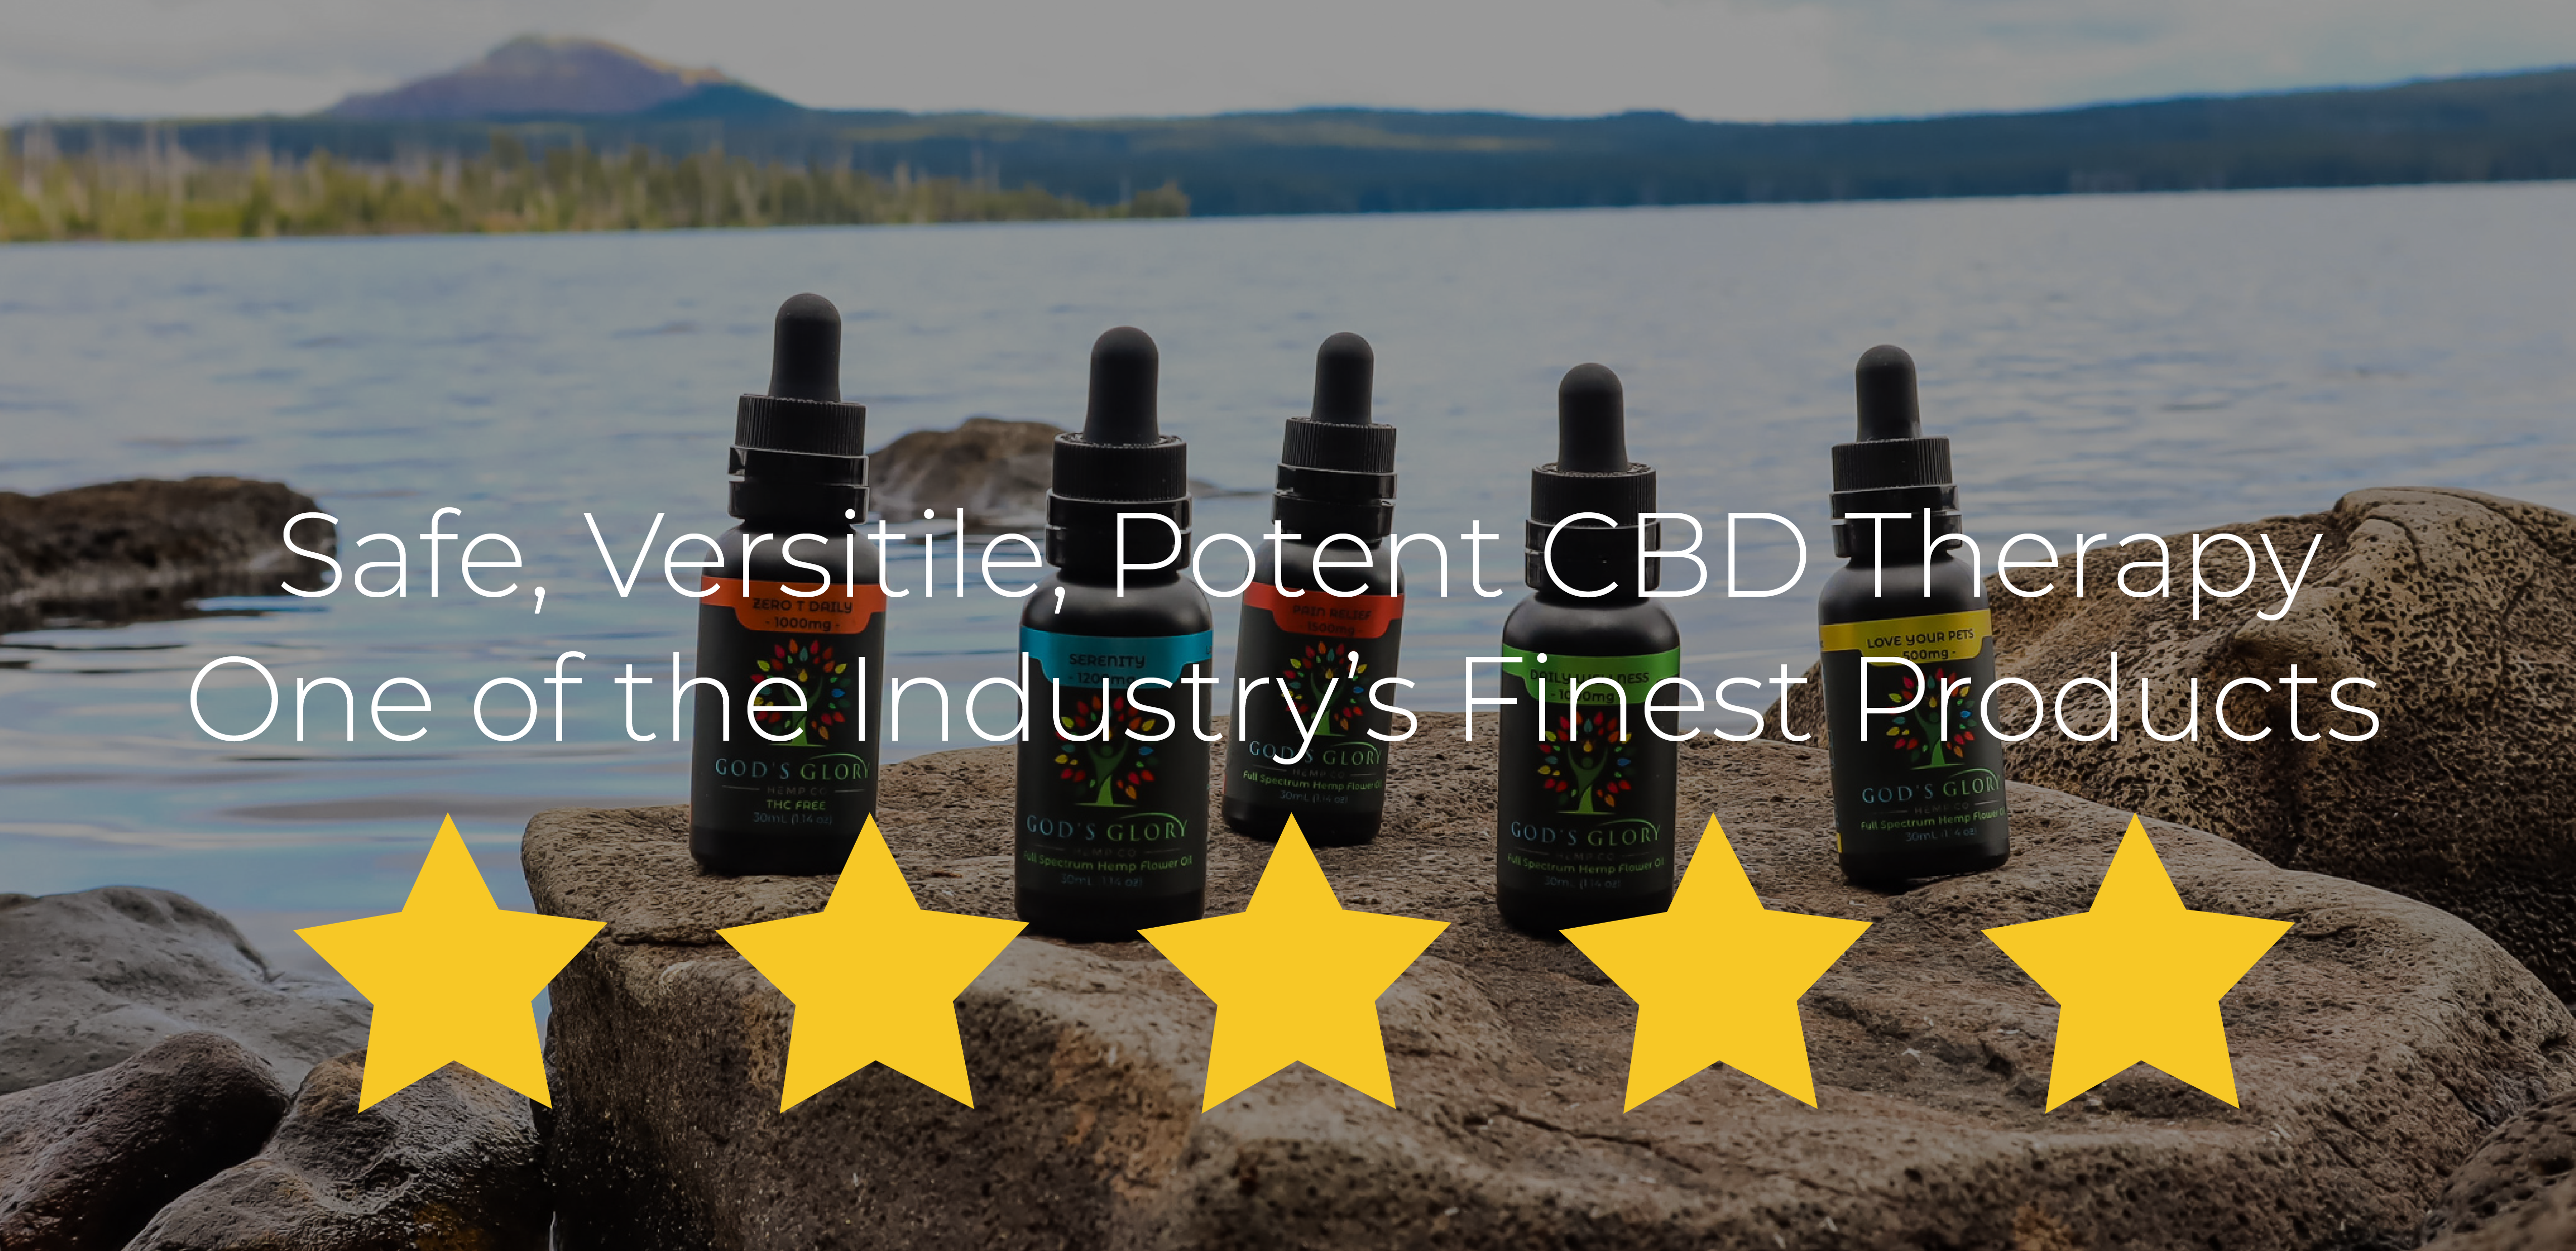 Our 5-Star Rated CBD Tincture Products